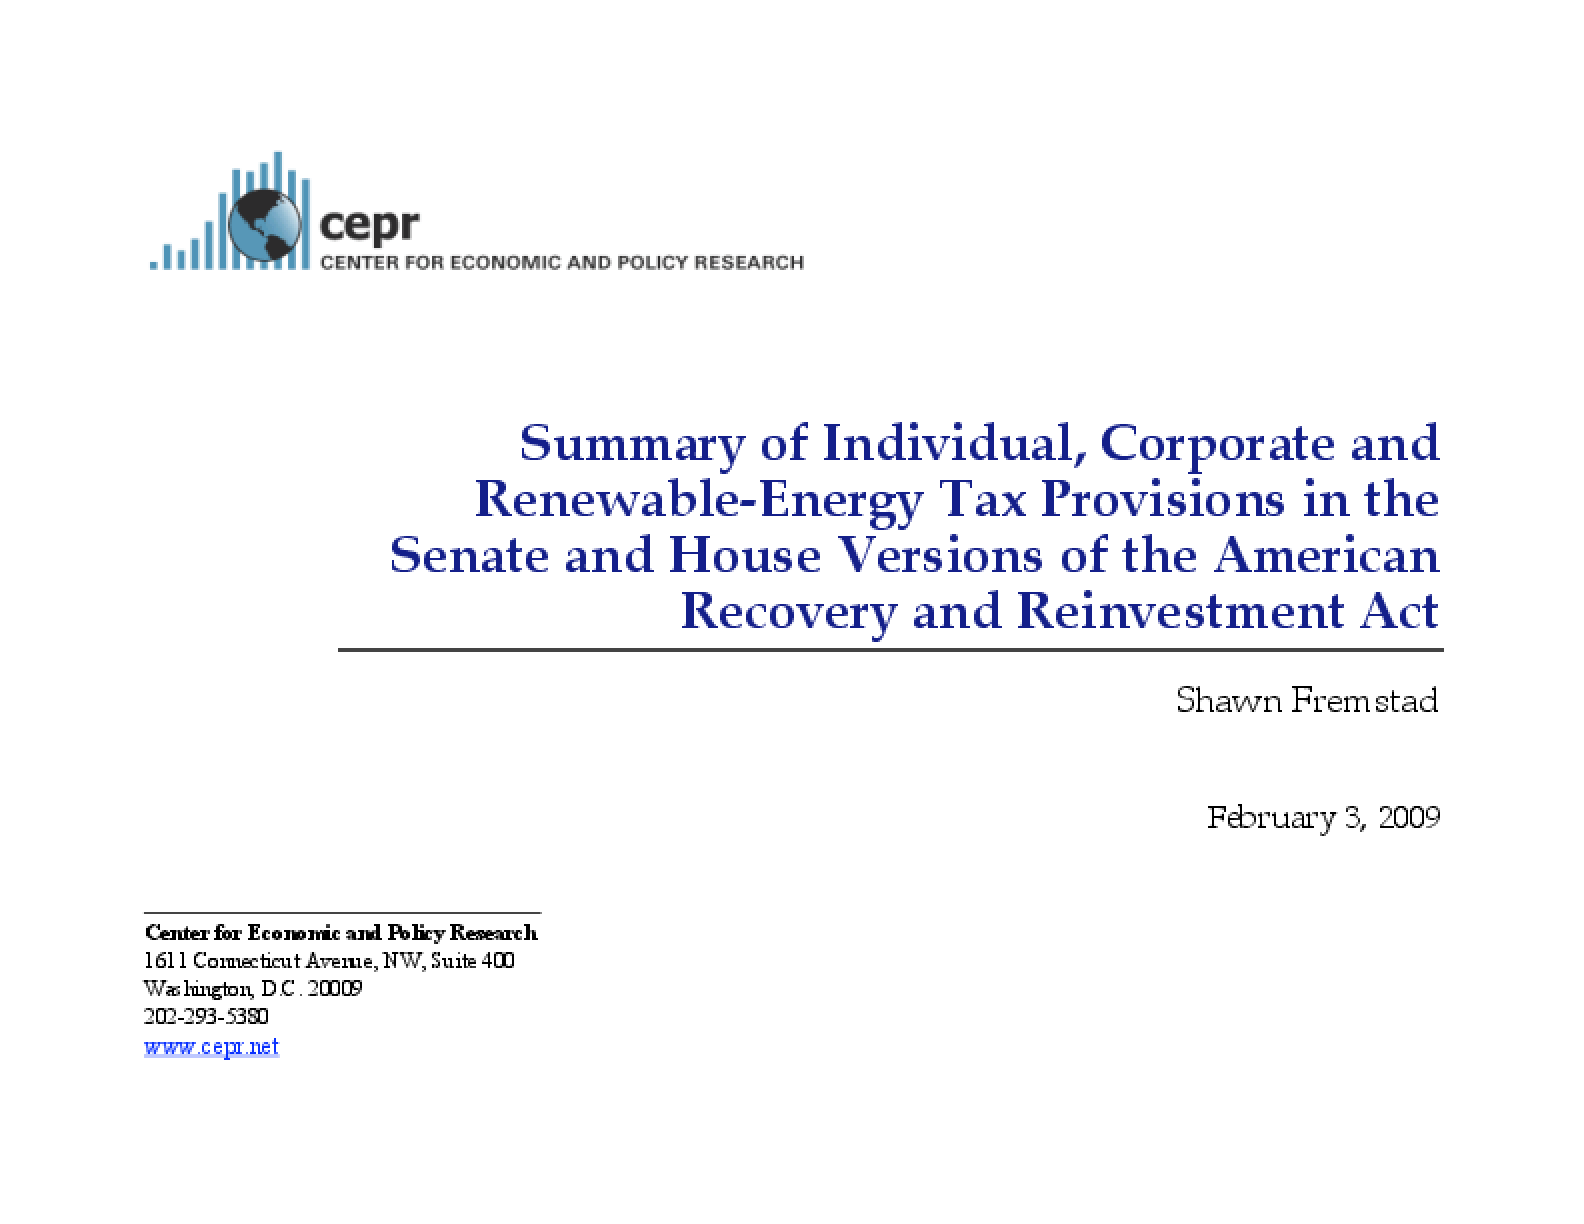 Summary of Individual, Corporate and Renewable-Energy Tax Provisions in the Senate and House Versions of the American Recovery and Reinvestment Act